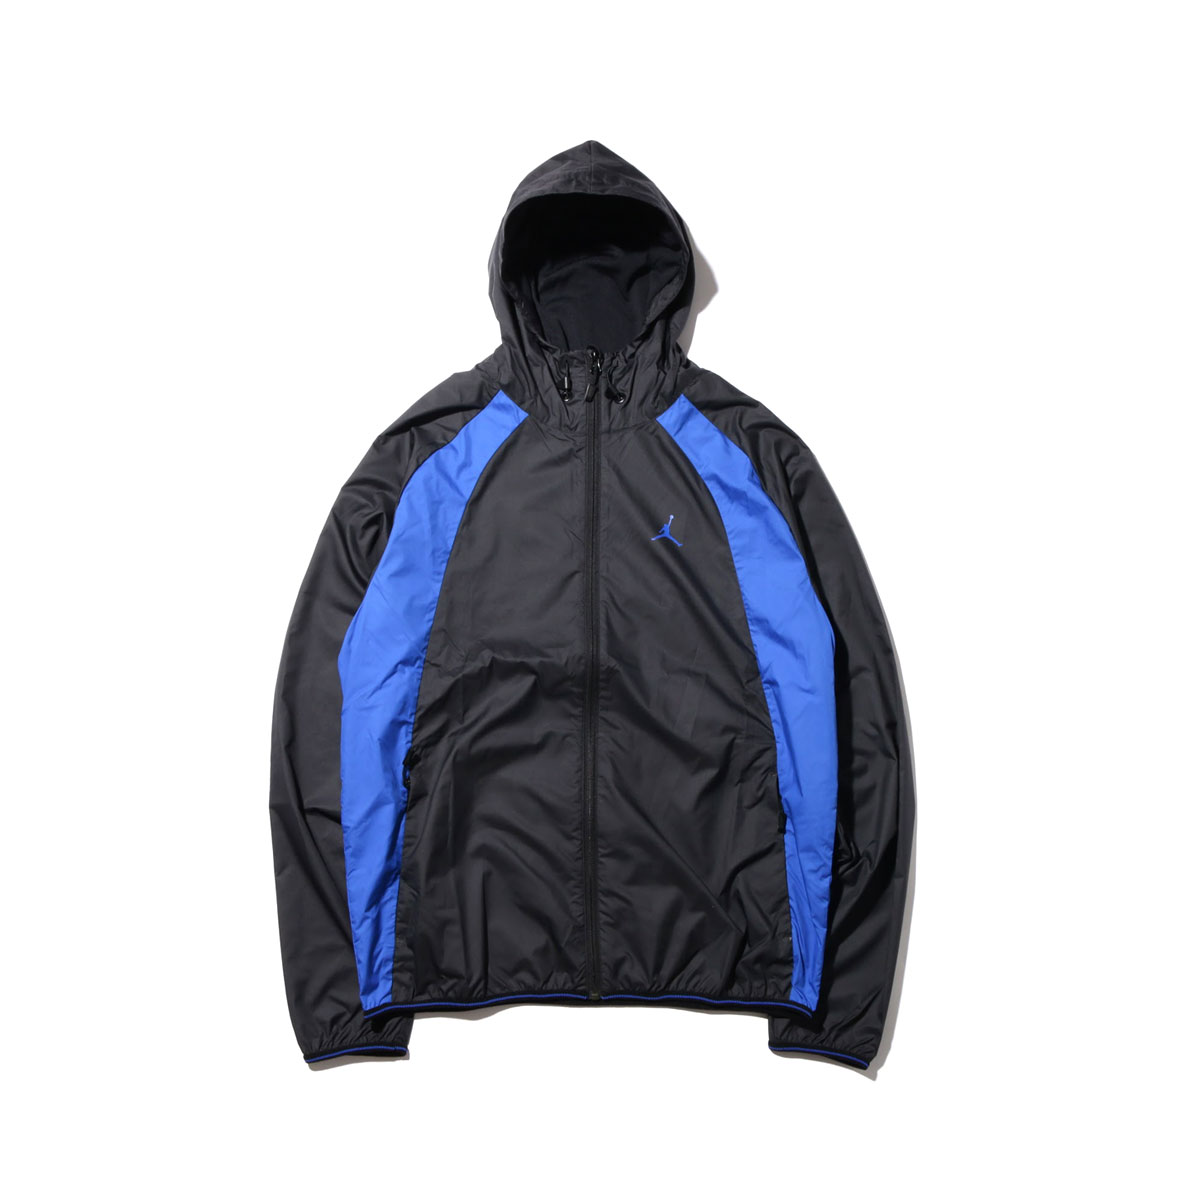 NIKE JSW WINGS WINDBREAKER(ナイキ ジョーダン JSW WINGS ウィンドブレーカー)(BLACK/BLACK/GAME ROYAL/(GAME ROYAL))【メンズ】17HO-S